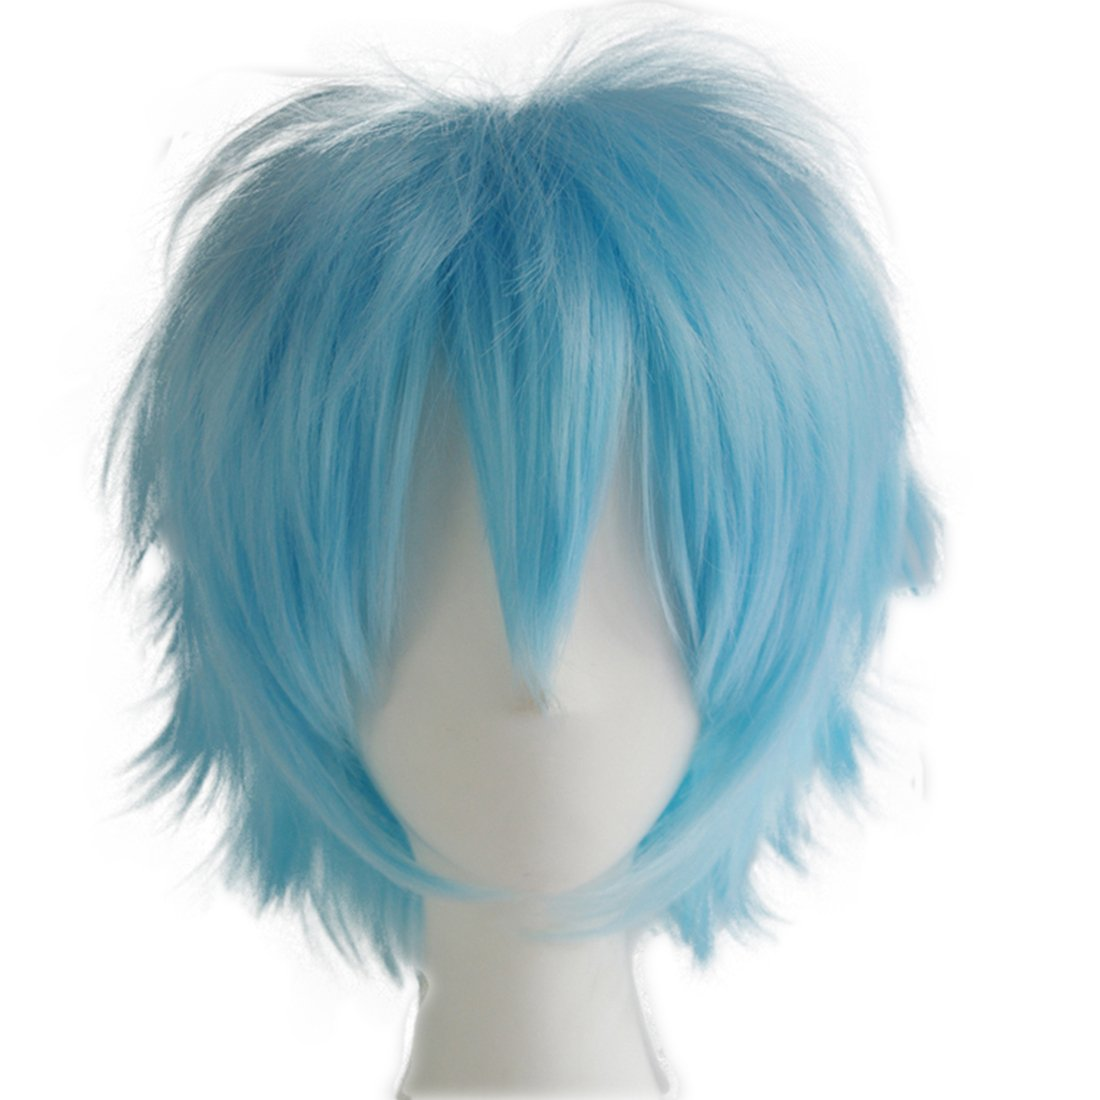 Alacos Popular Synthetic Short Unisex Spiky Cosplay Anime Wig Aqua Blue Wig Bangs +Free Wig Cap